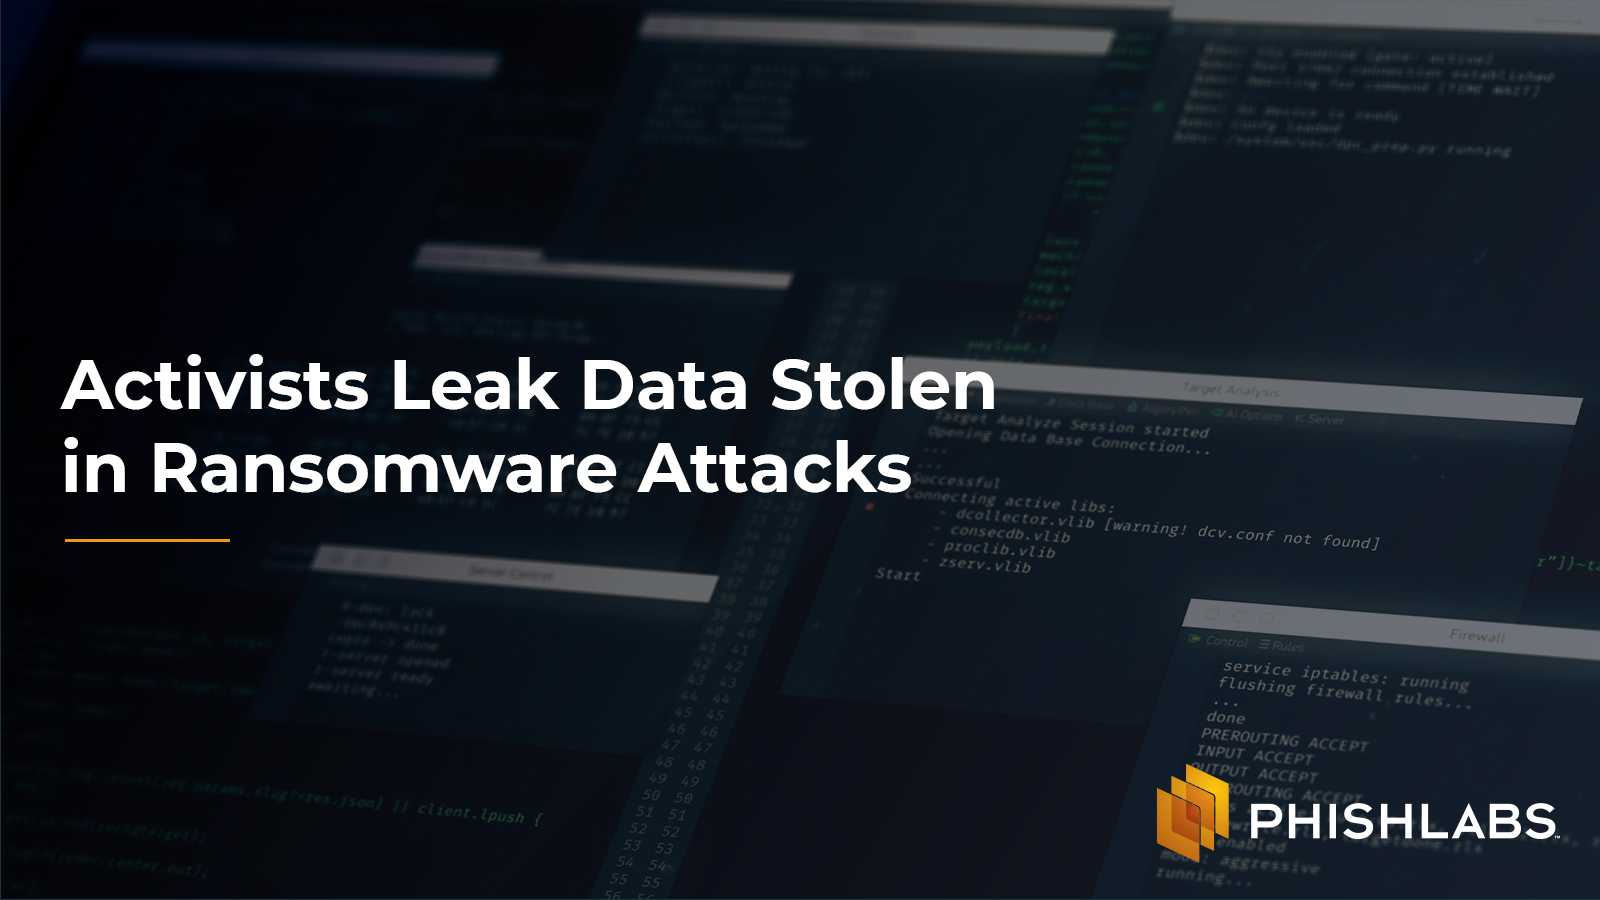 Activists Leak Data Stolen in Ransomware Attacks